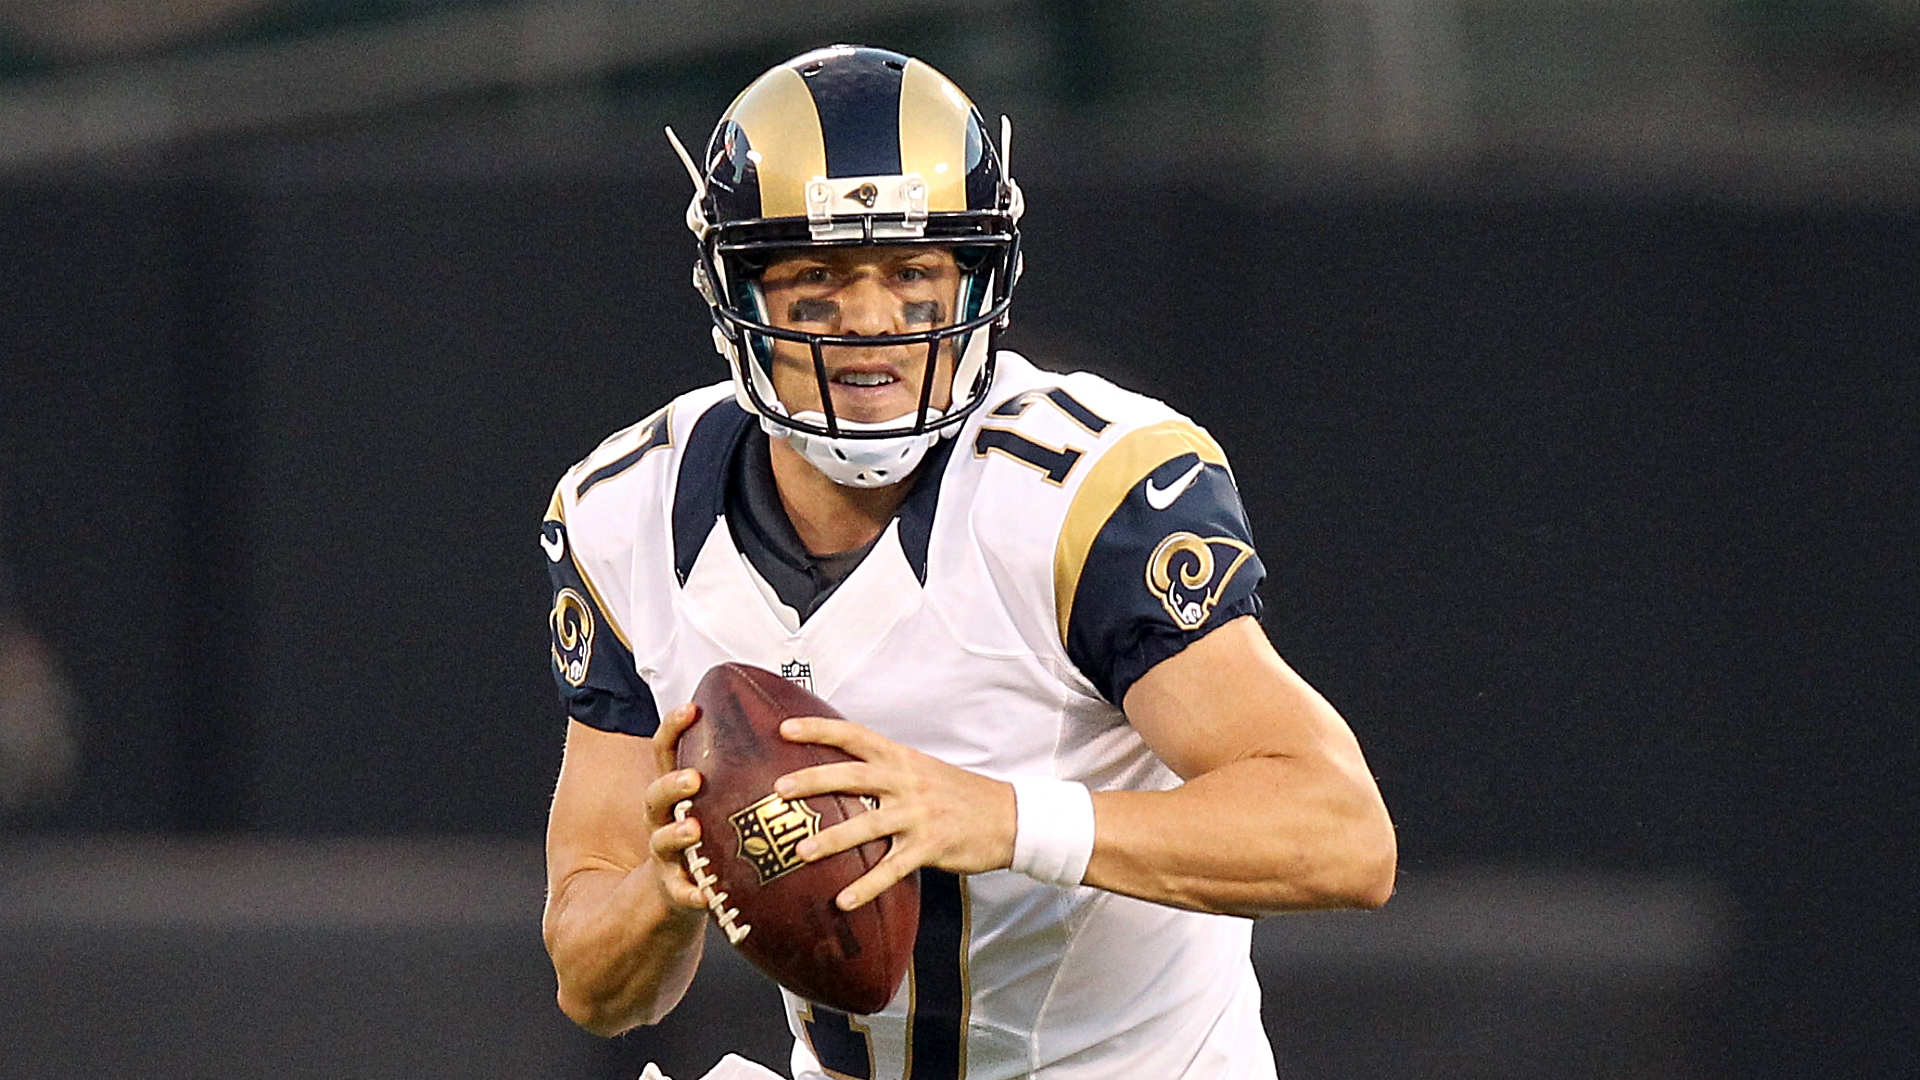 Rams Bench Nick Foles Will Start Case Keenum At Qb Against Ravens Nfl Sporting News